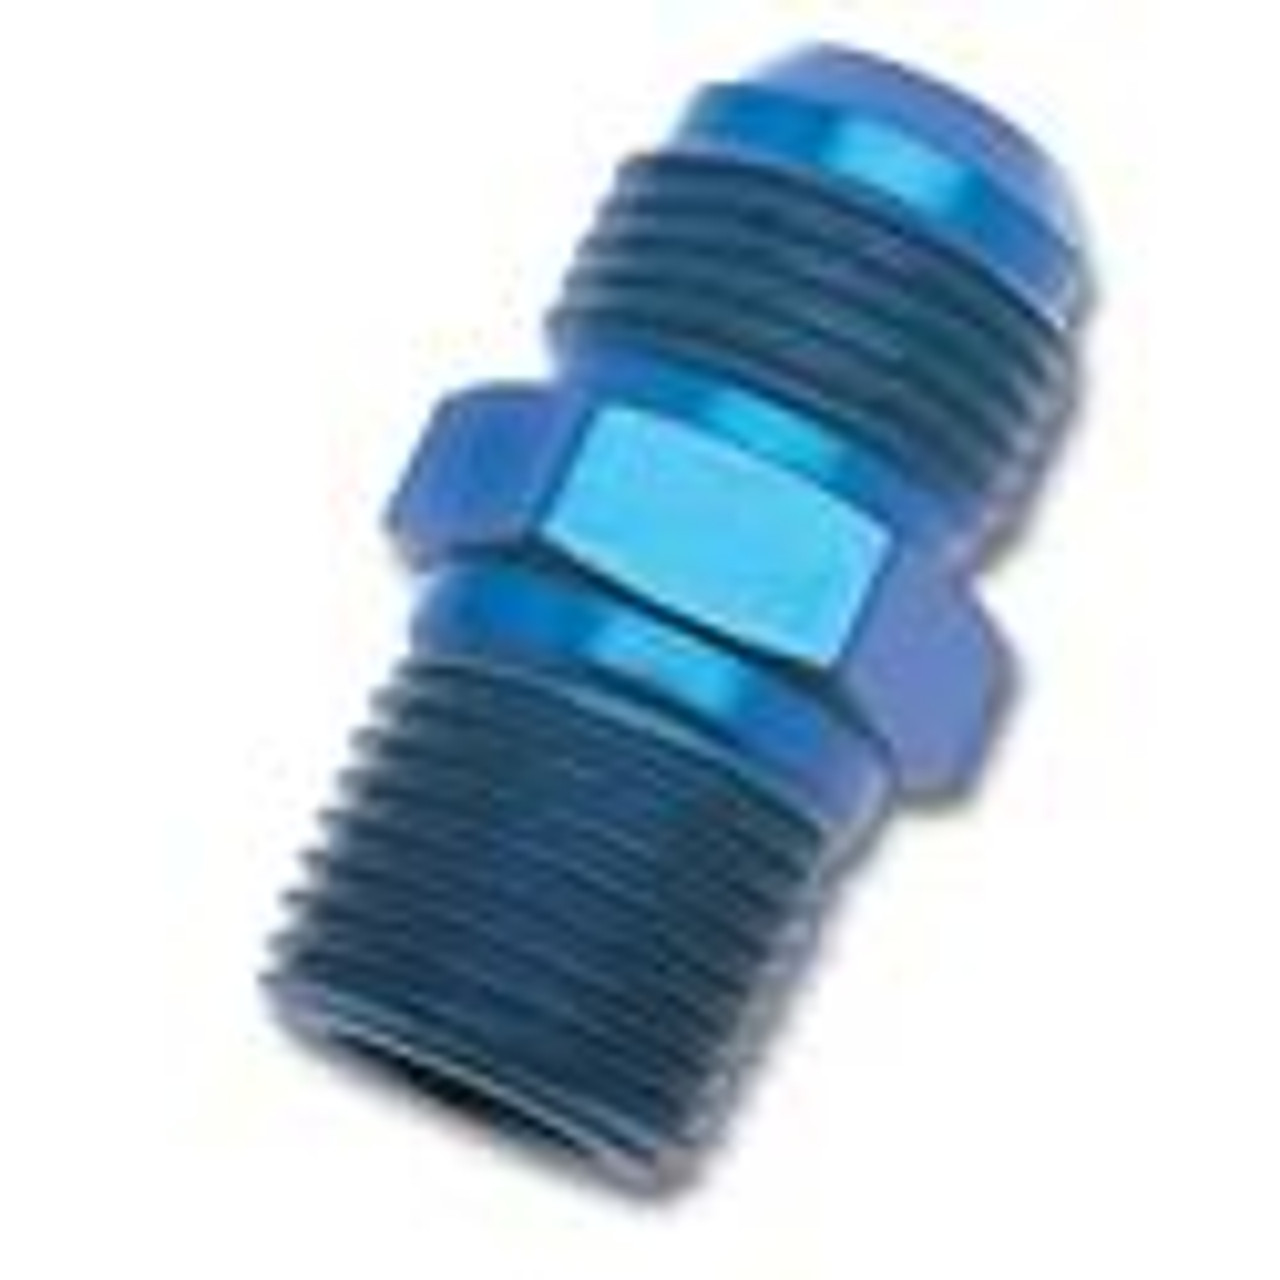 Russell Straight -8 AN to 1/2  Pipe Adapter Fitting